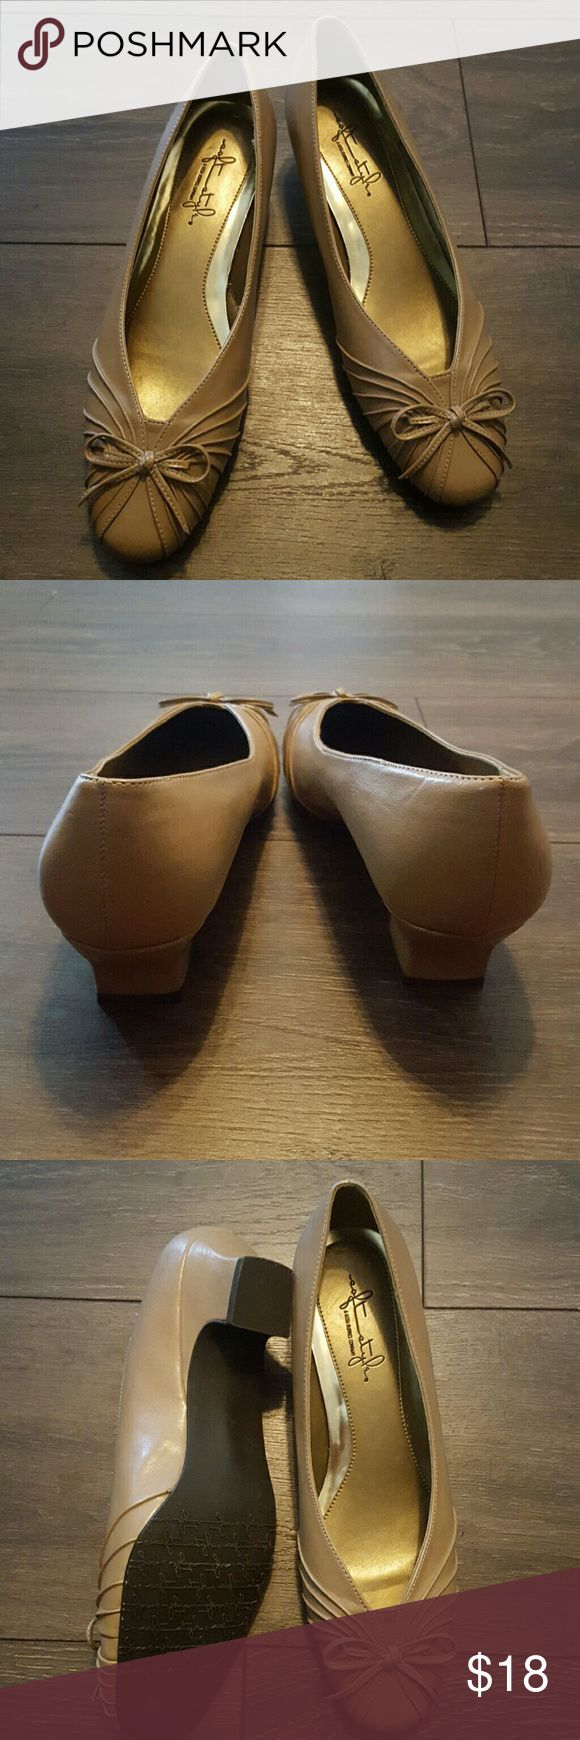 "Soft Style Hush Puppies 1"" heels Soft style Hush Puppies tan 1 inch heels, in excellent, like new, condition Hush Puppies Shoes Heels"